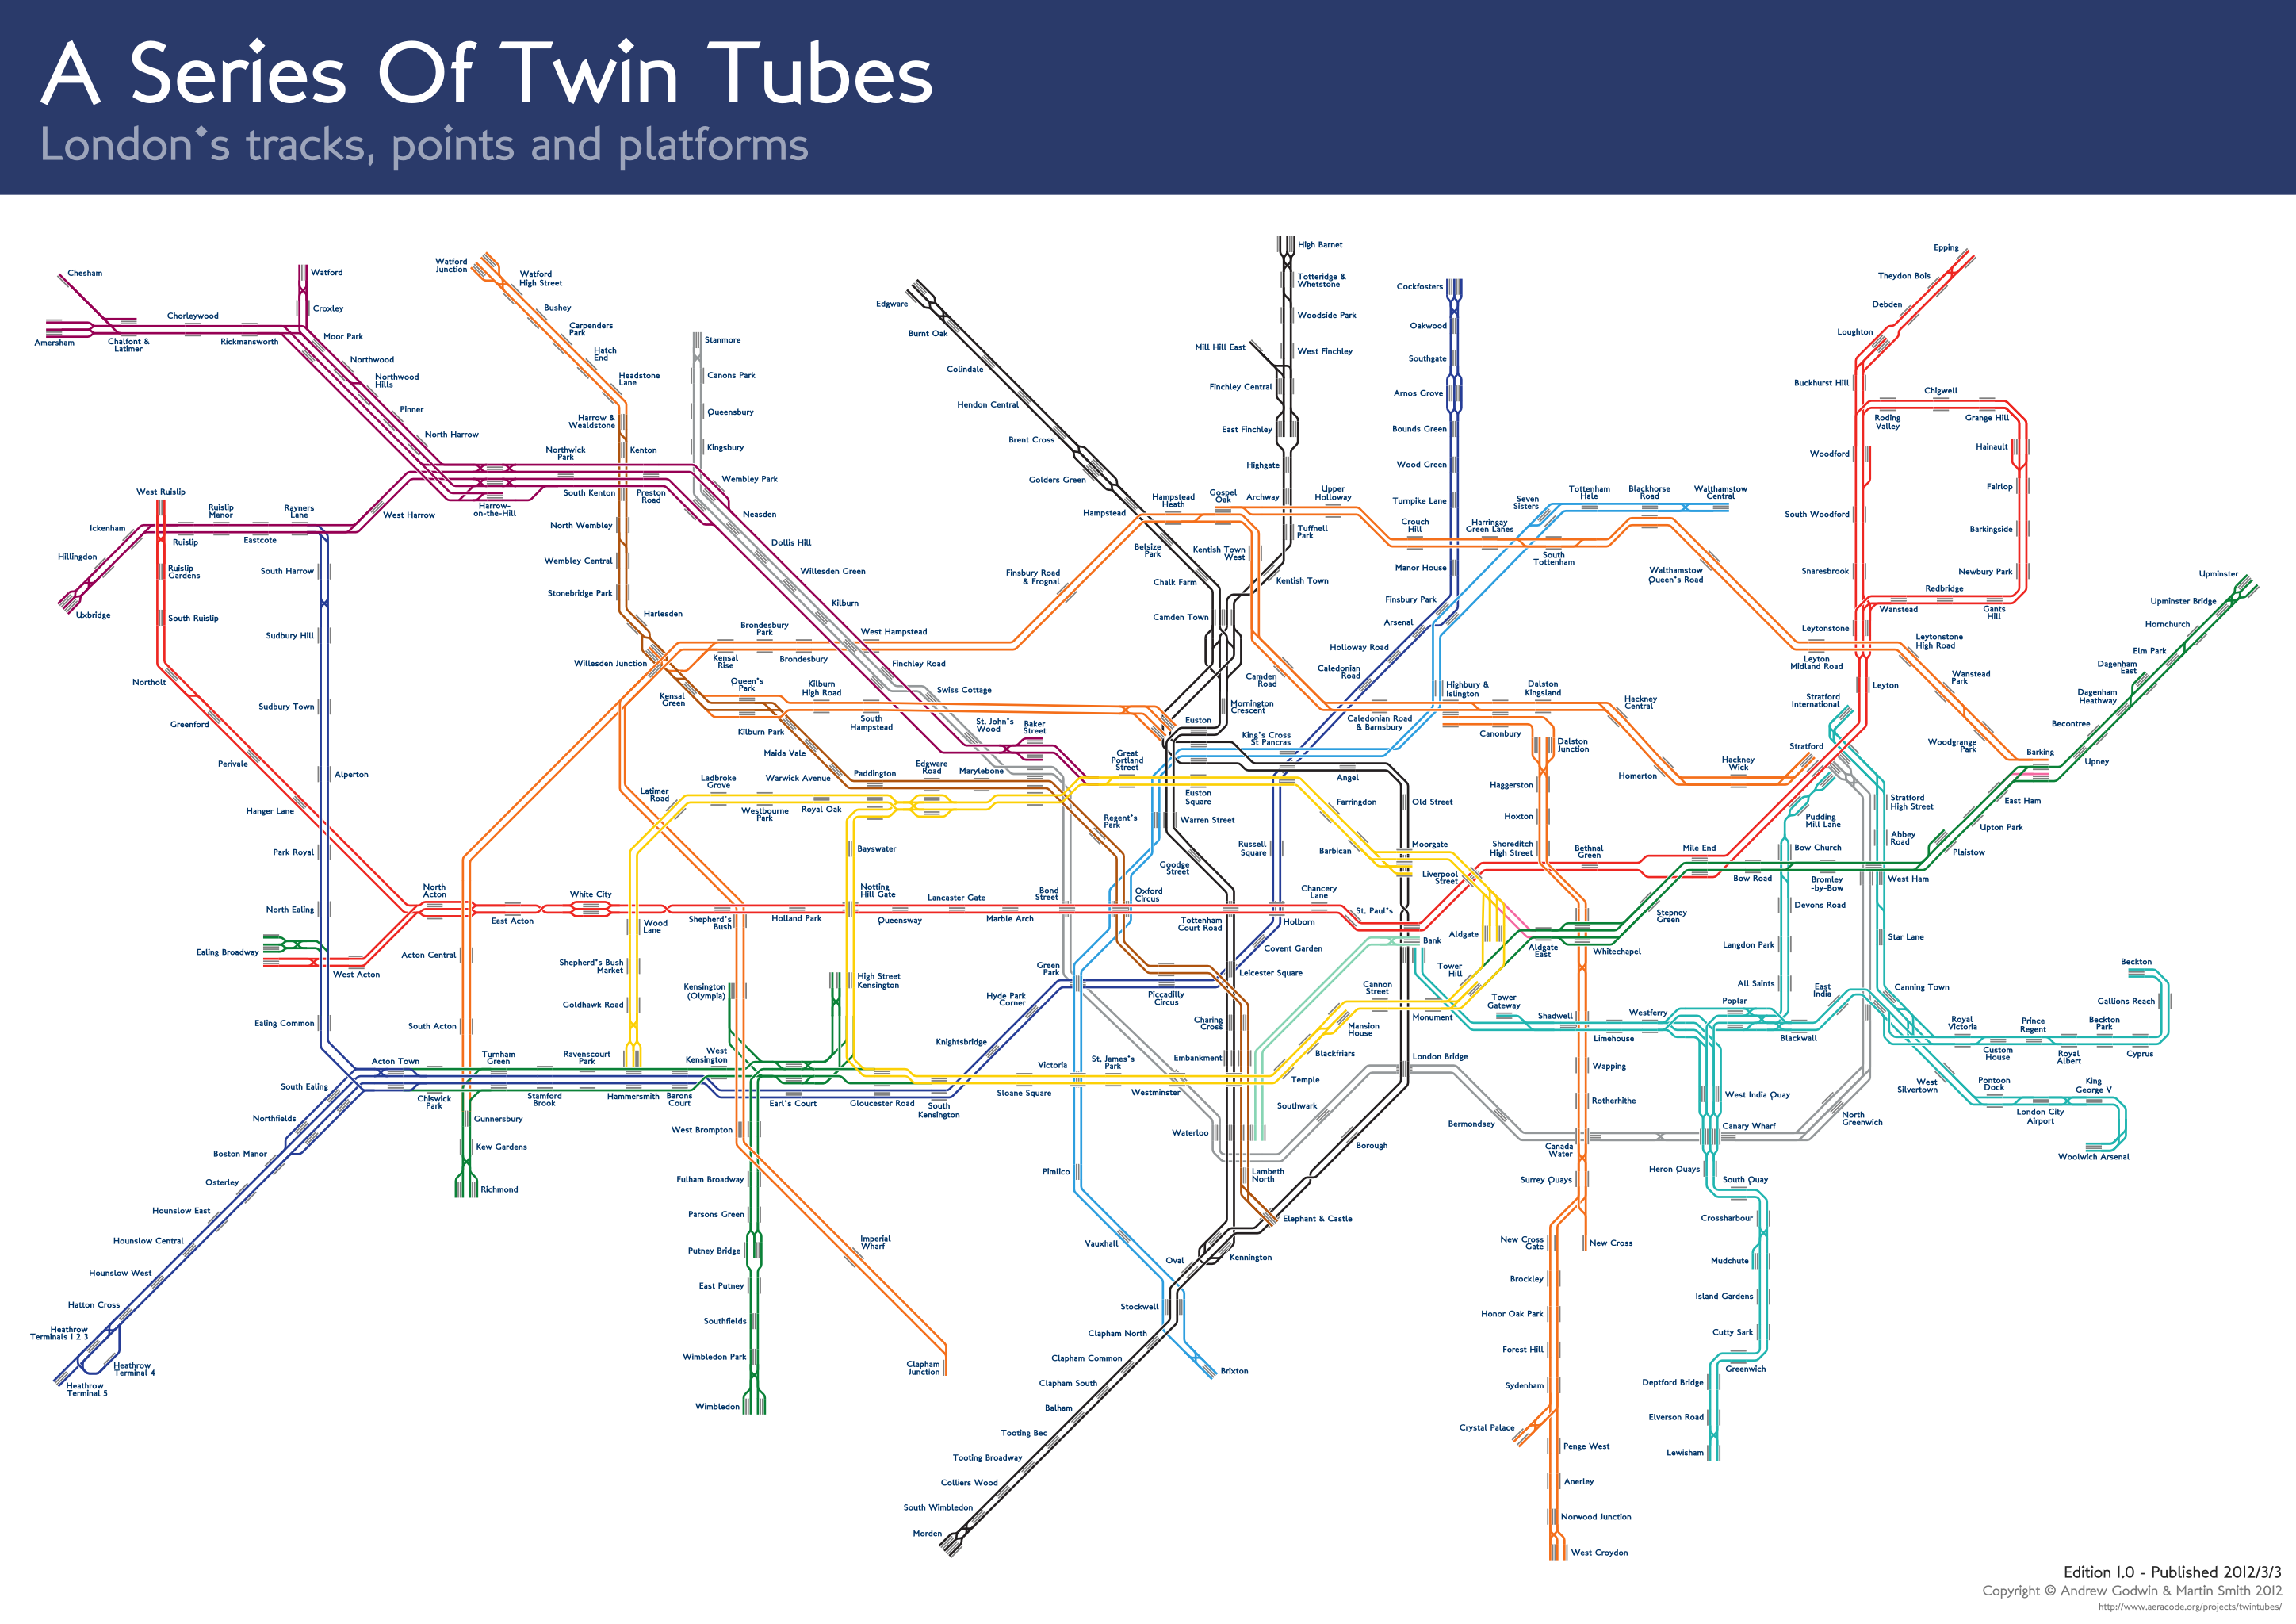 a series of twin tubes